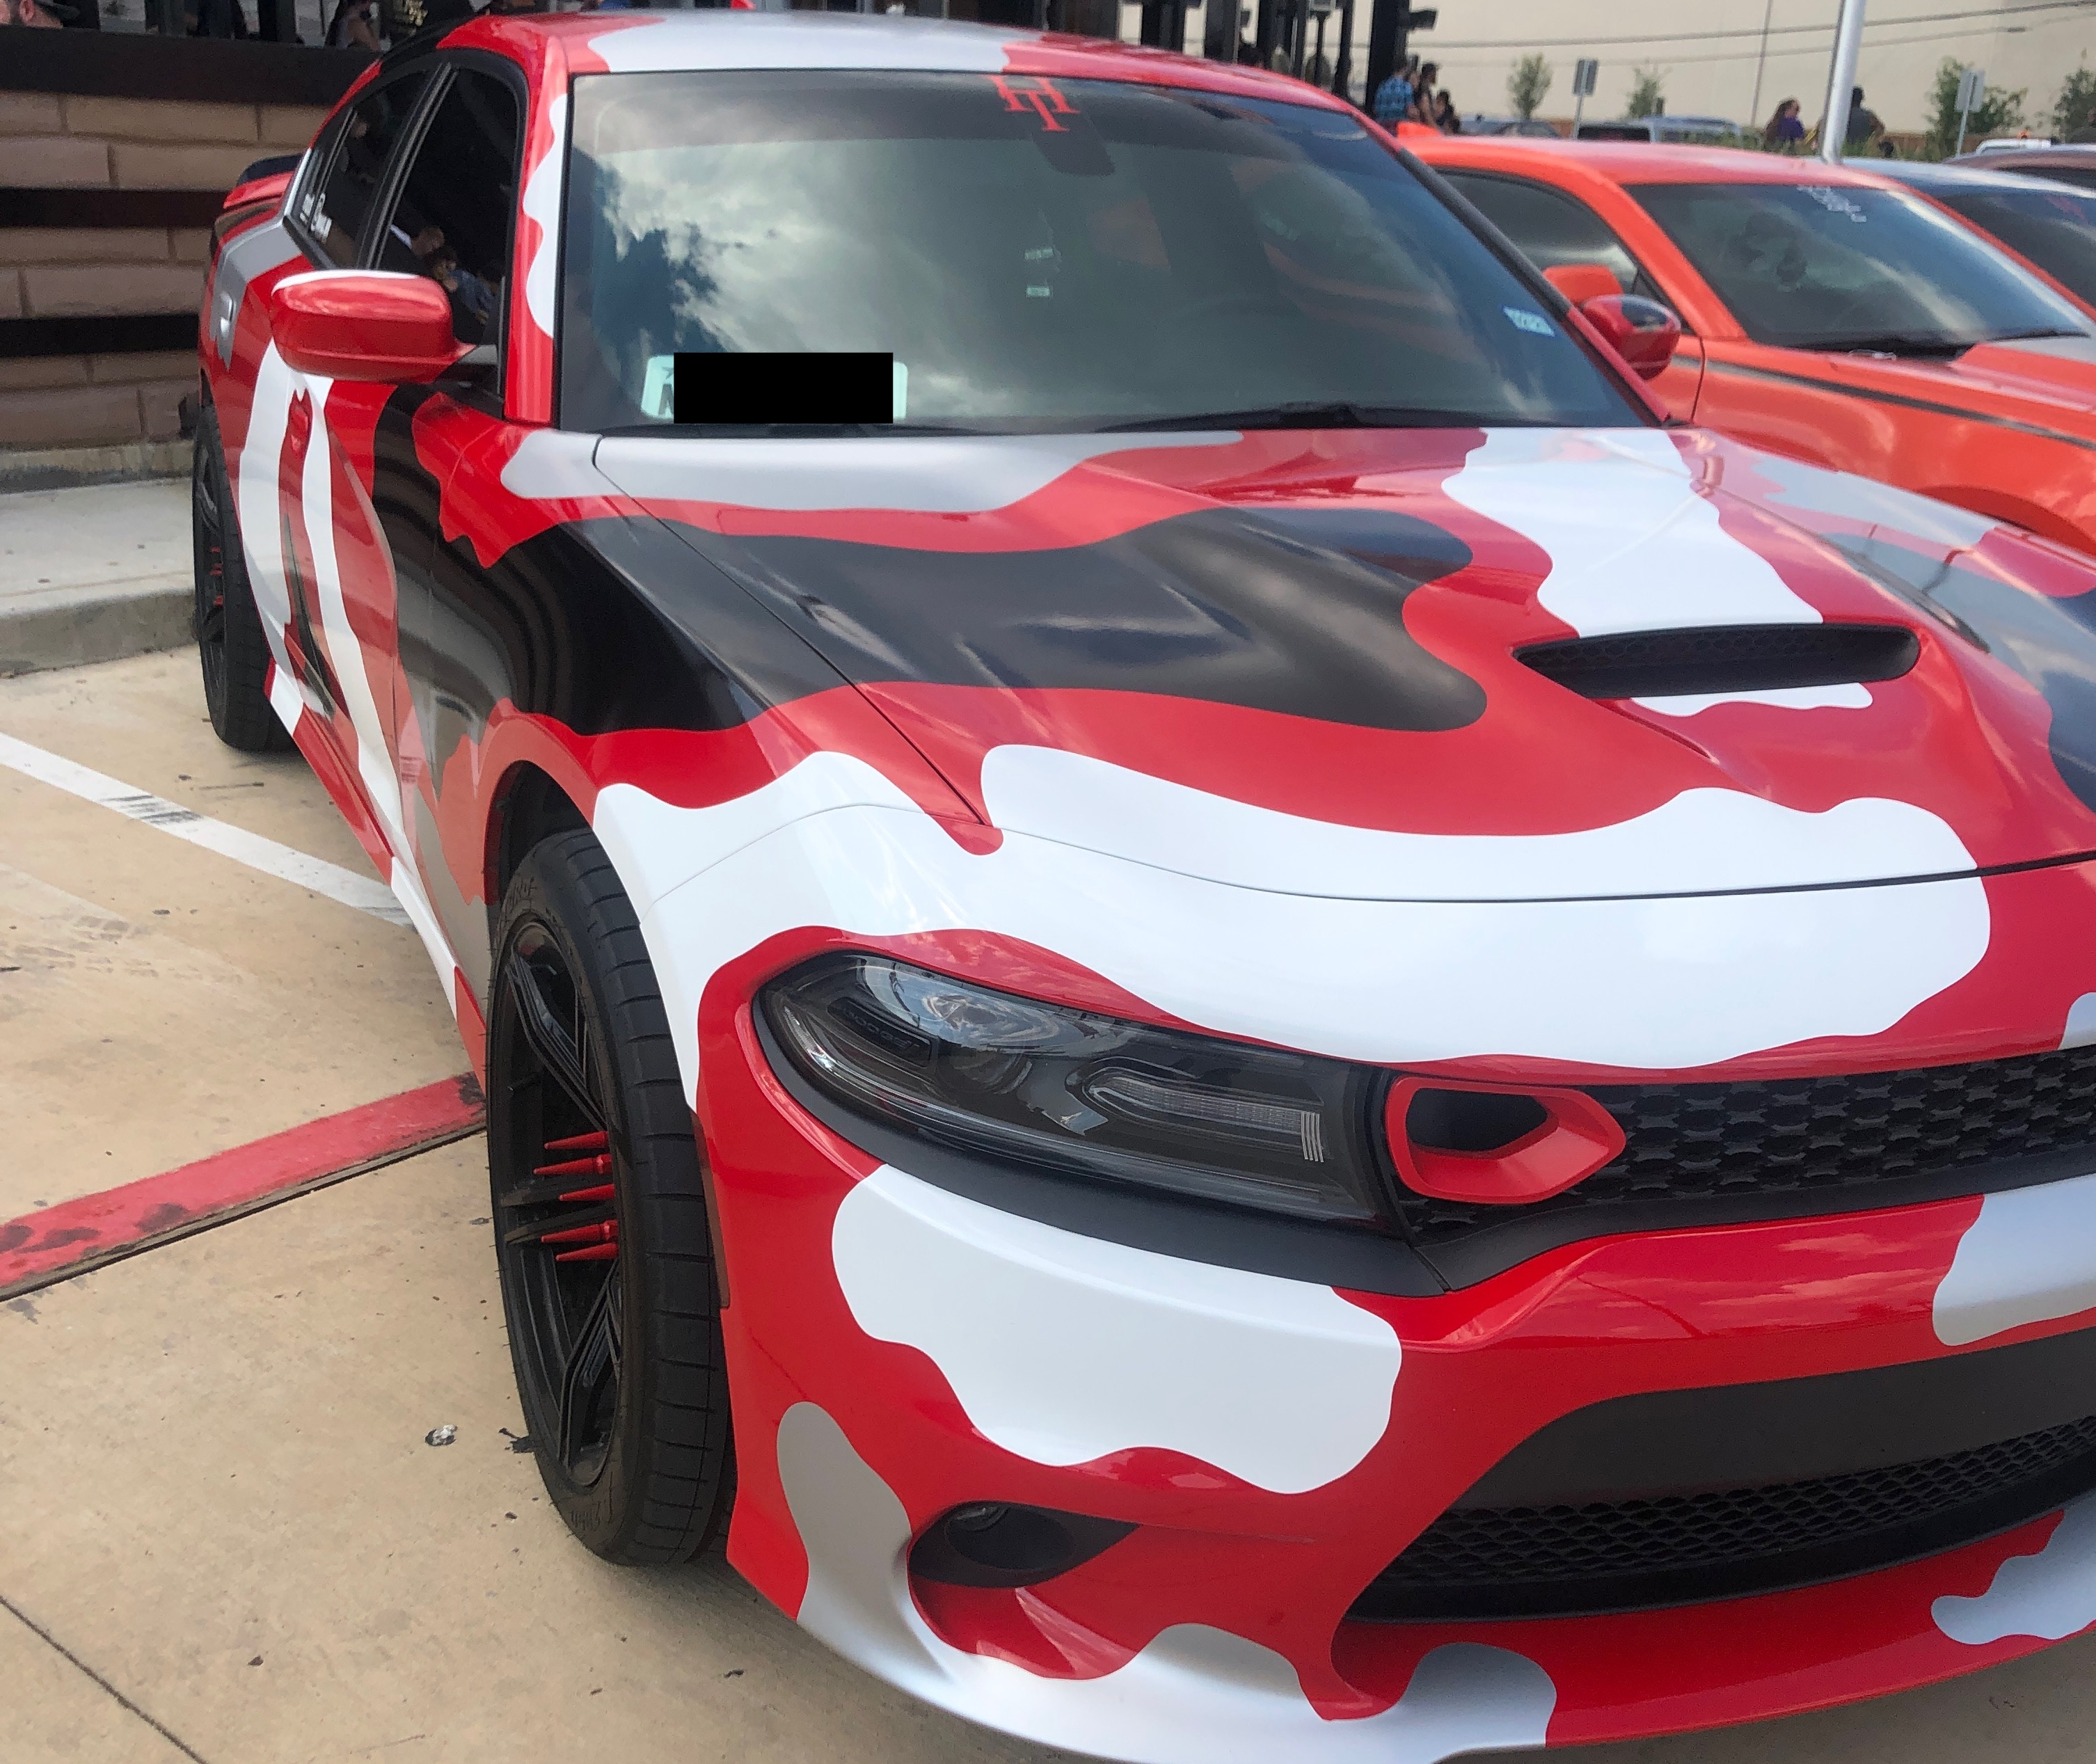 Black and Red Charger Vinyl Wrapped